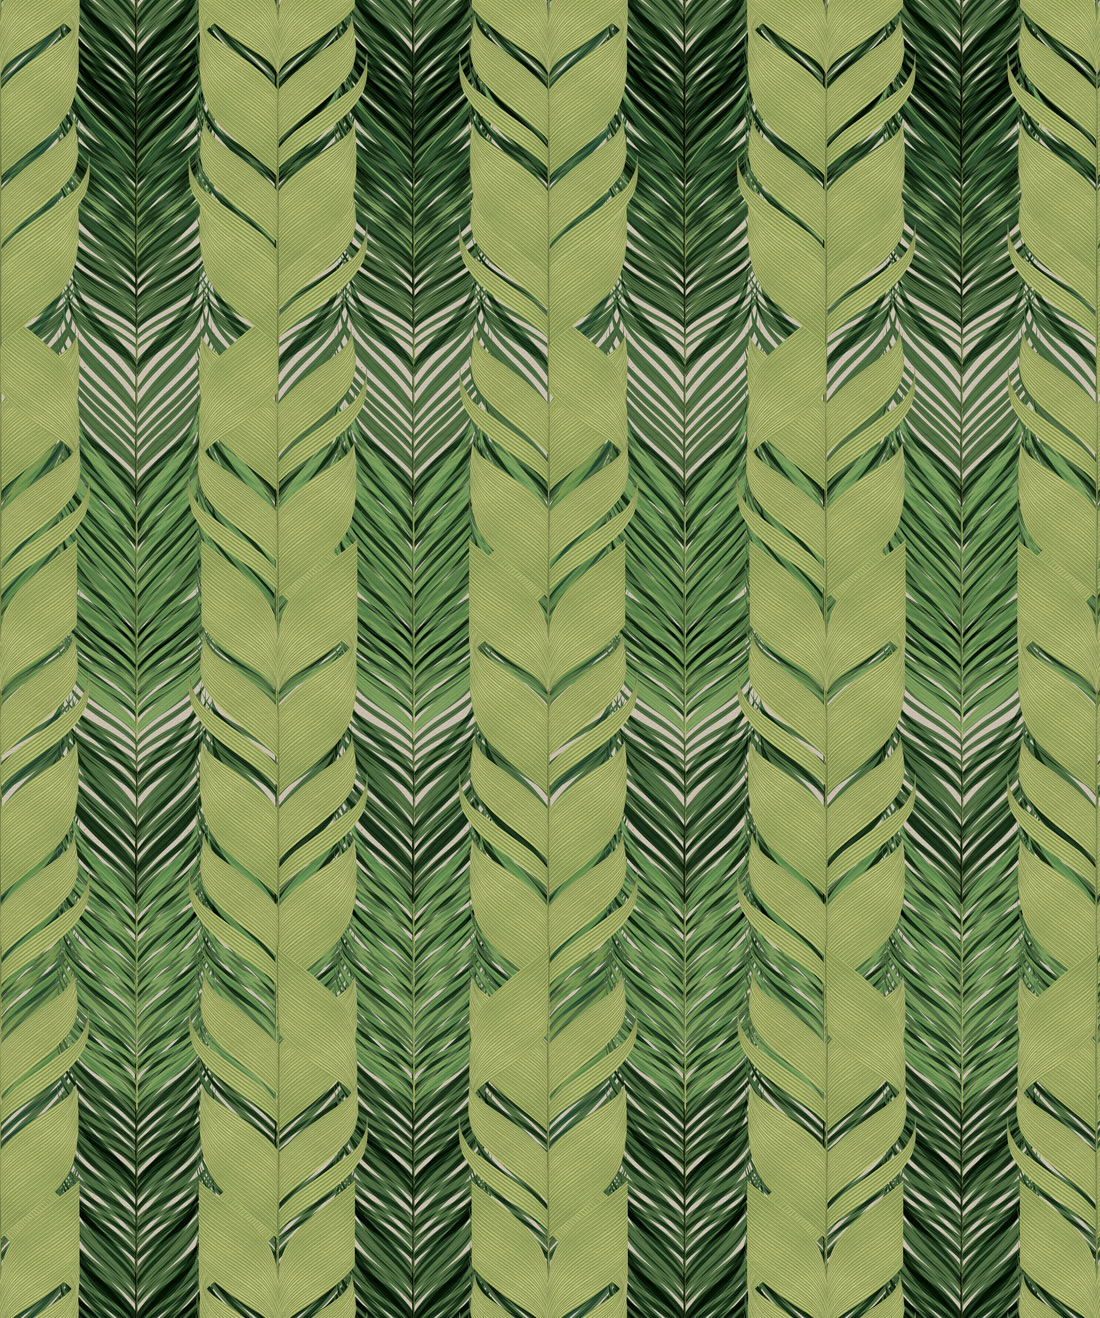 Jungle Weave Wallpaper